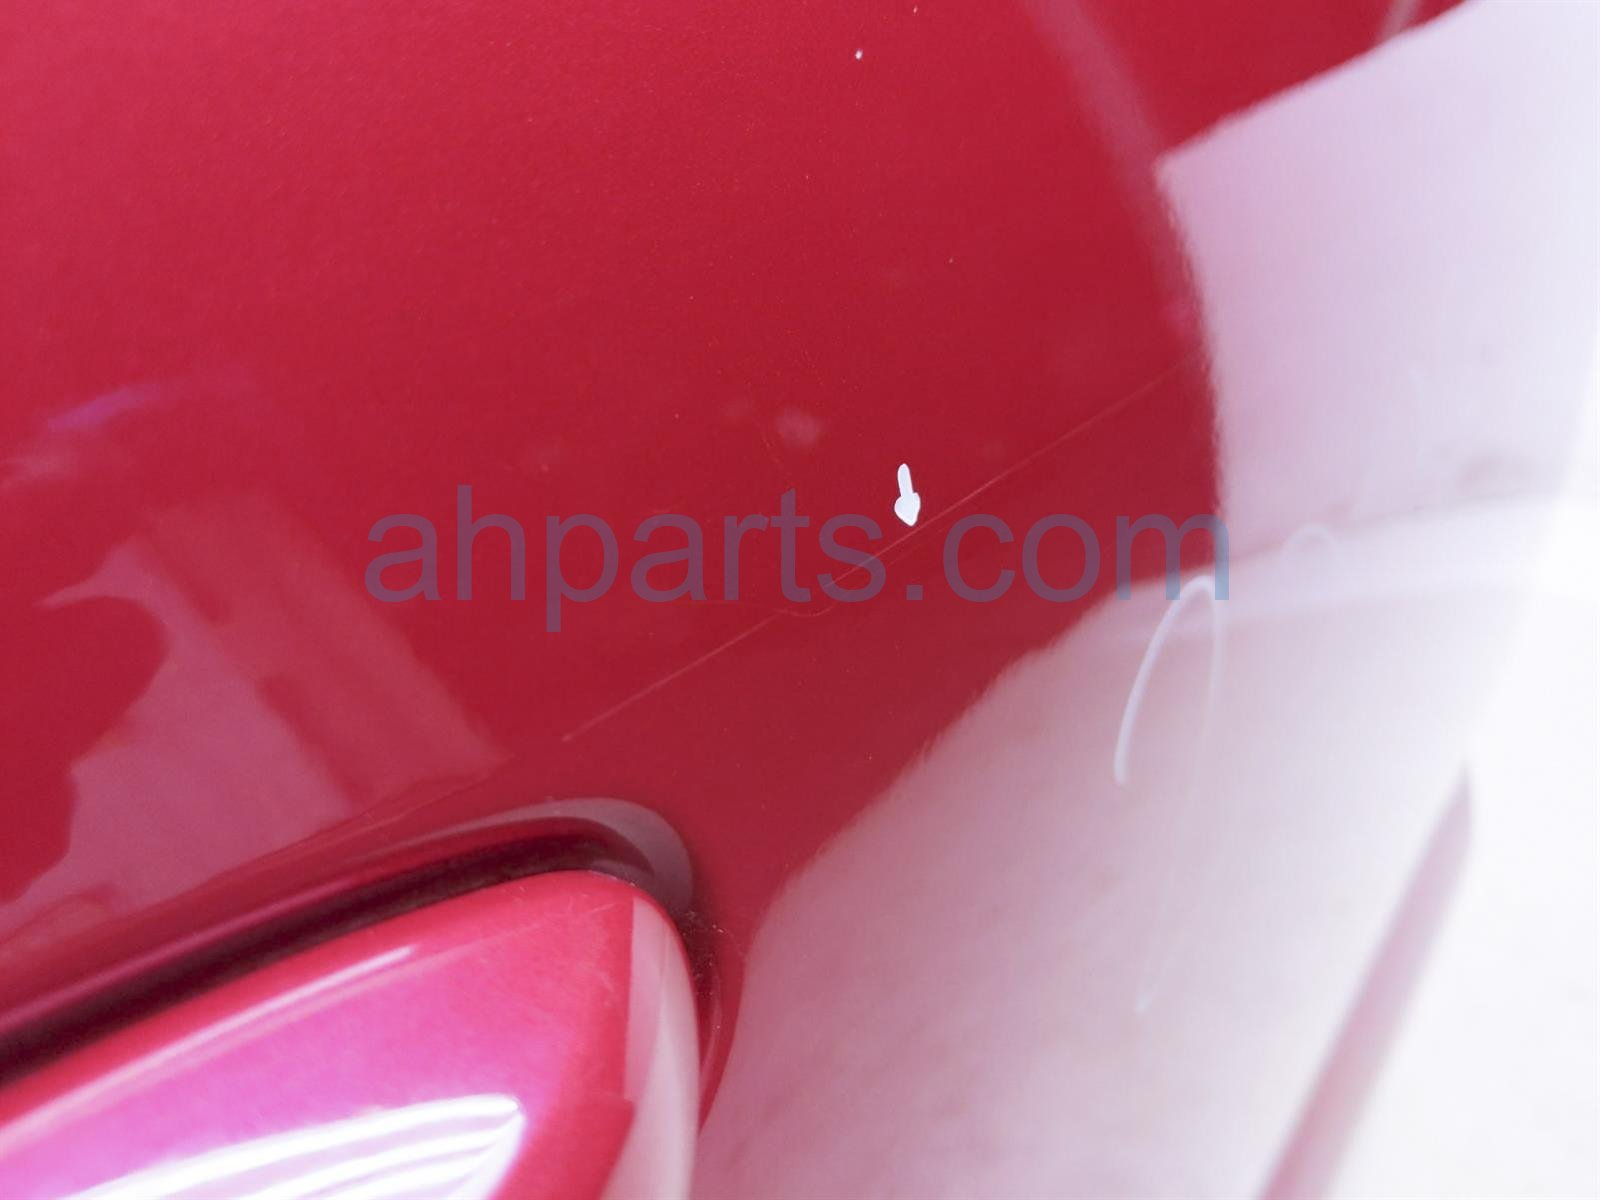 2017 Toyota Tacoma Rear Passenger Door   Red   No Inside Panel 67003 04120 Replacement